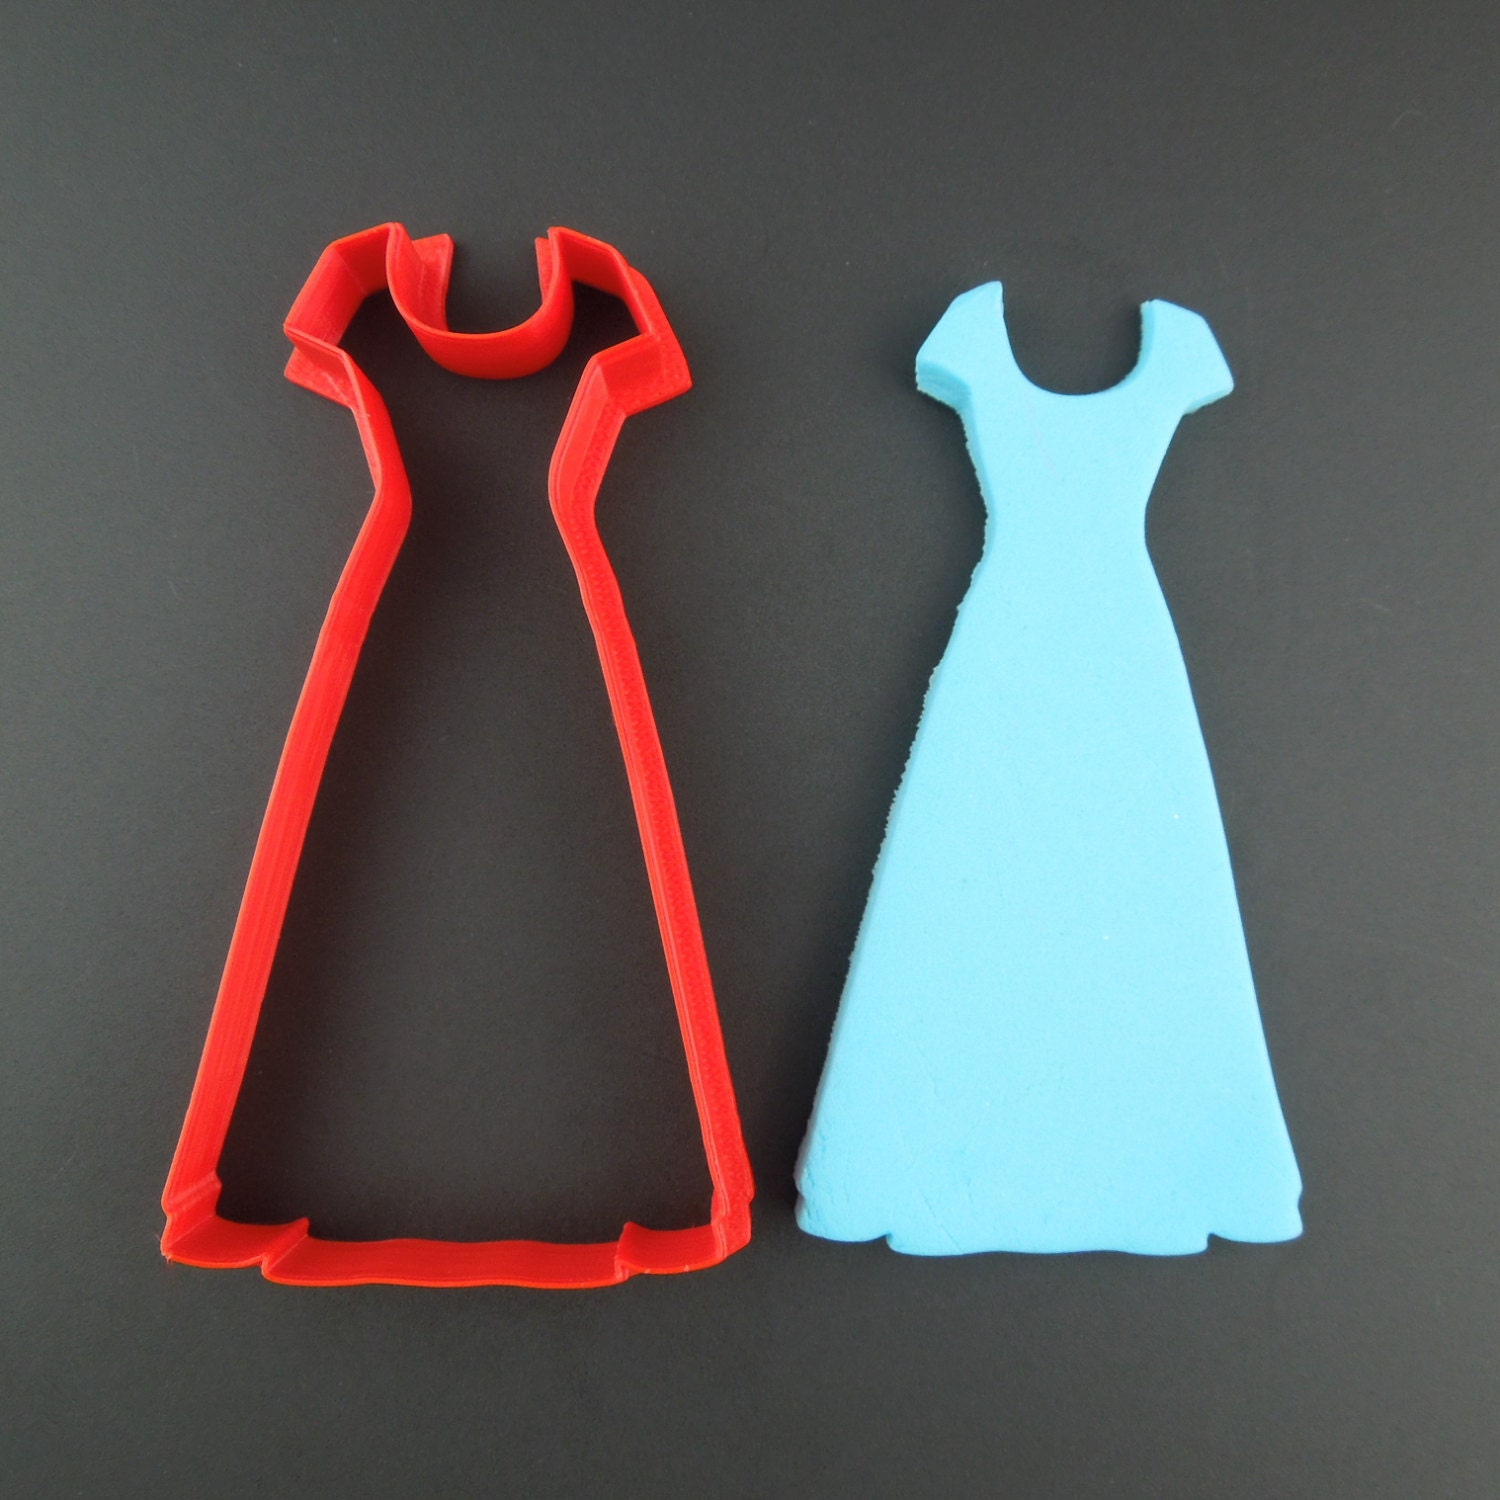 wedding dress cookie cutter 3d printed wedding dress cookie cutter Sold by TheRedCollar